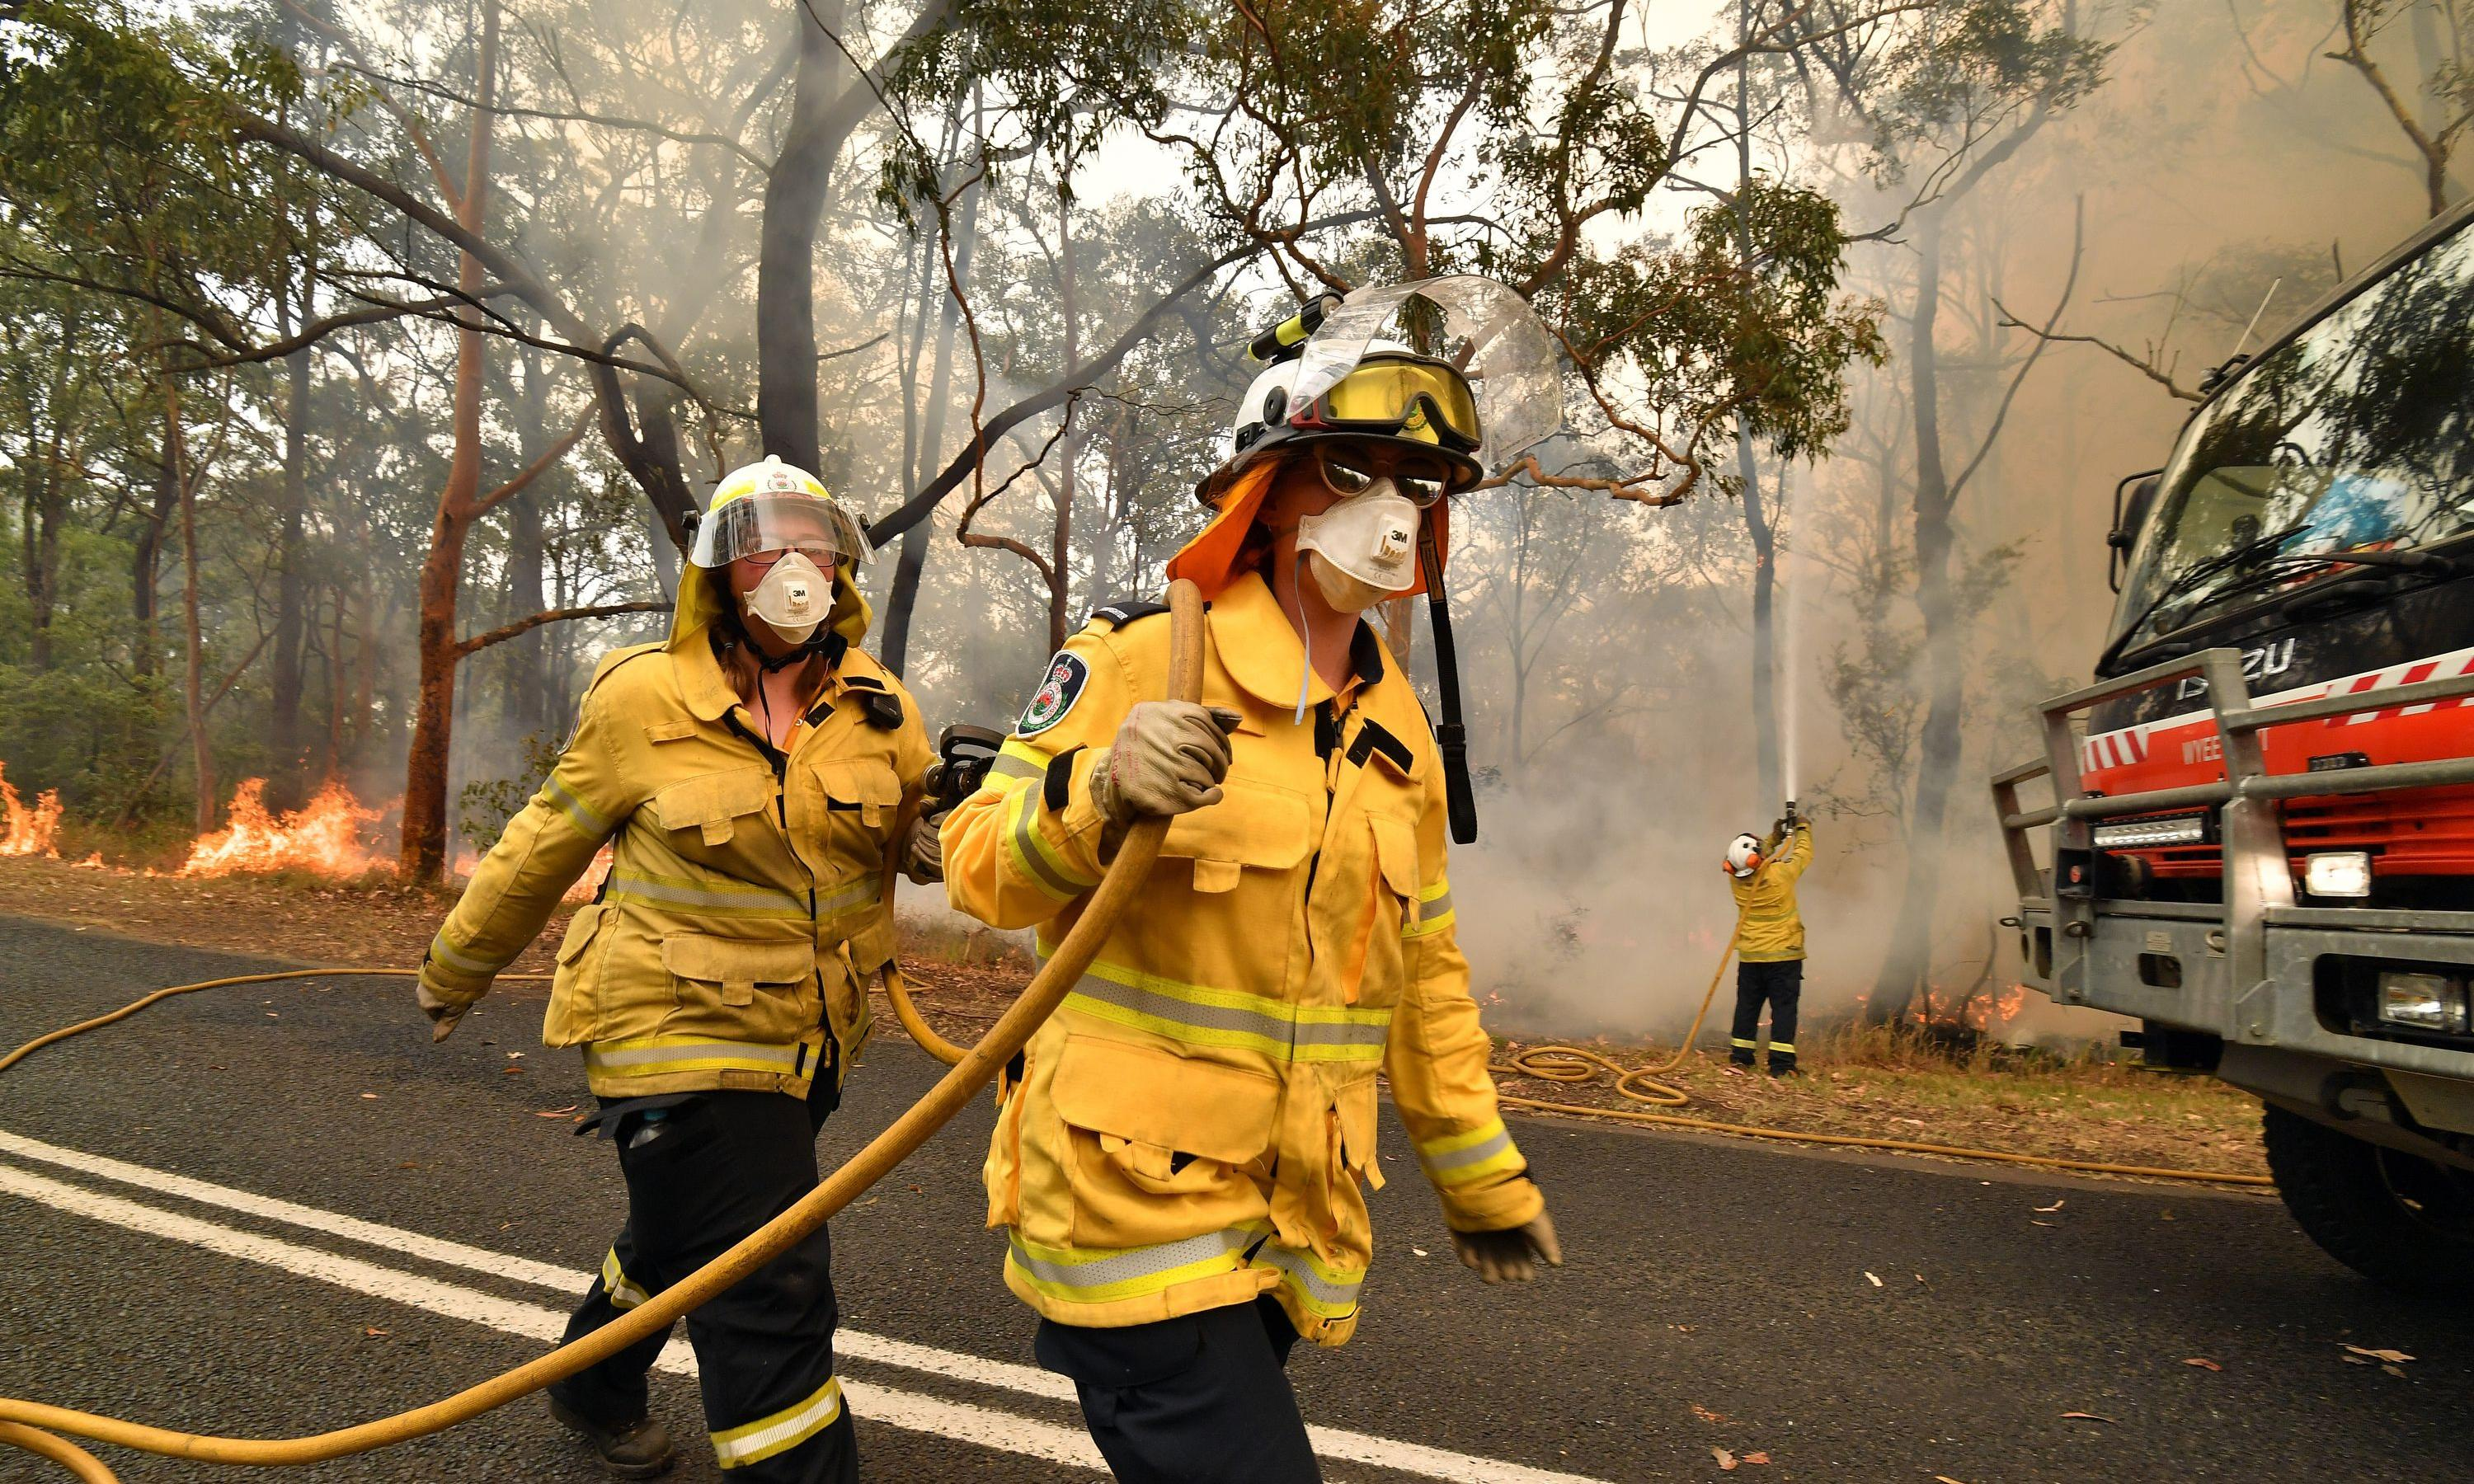 Hazard reduction burning had little to no effect in slowing extreme bushfires